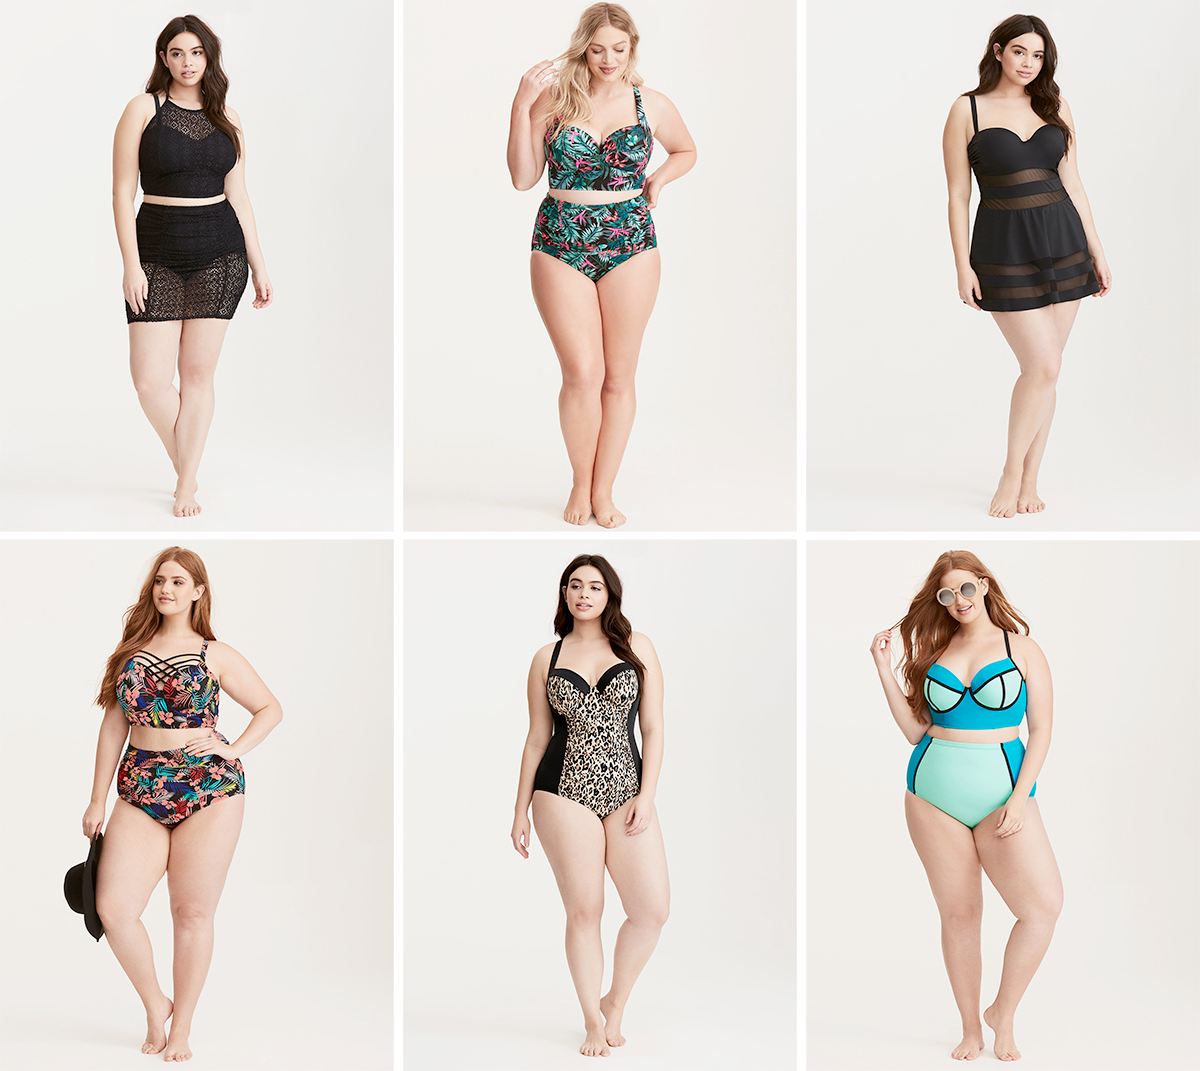 Plus size swimsuit special 2017 // Crochet Bikini, Halter Top USD $55.98 and Skirt Bottom USD $39.98 from Torrid | Tropical Print Bikini, Top USD $19.99 and Bottom USD $19.99 from Torrid | Mesh Inset Skater One Piece Swimsuit, USD $108.90 from Torrid | Tropical Print Bikini, Top USD $68.90 and Bottom USD $44.90 from Torrid | Leopard Print Side One Piece Swimsuit, USD $84.98 from Torrid | Colorblock Bikini, Top USD $68.90 and Bottom USD $44.90 from Torrid